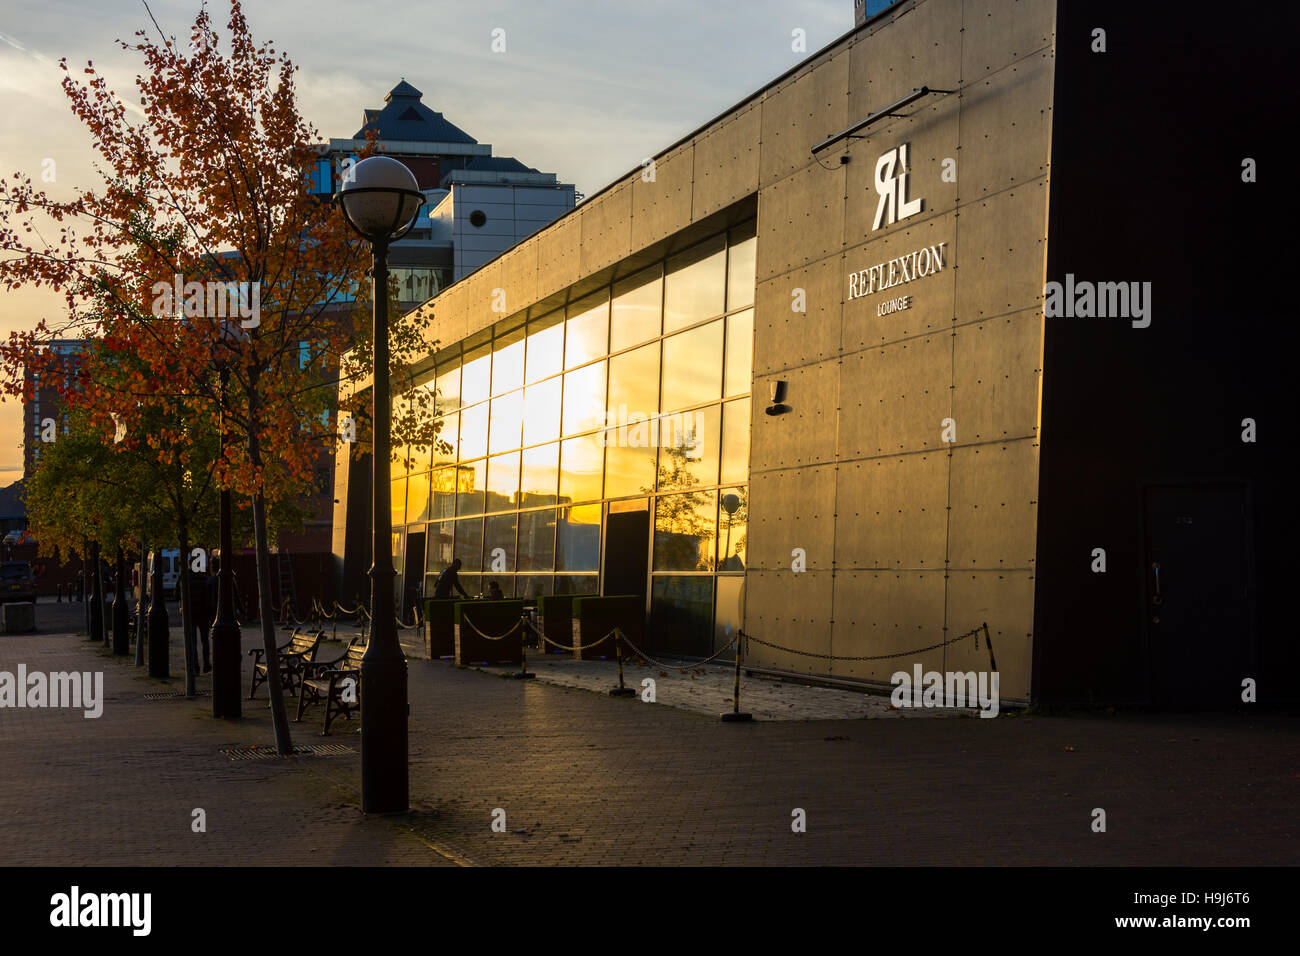 Sunset reflected in the windows of the 'Reflexion' lounge bar, Erie Basin, Salford Quays, Manchester, England, - Stock Image